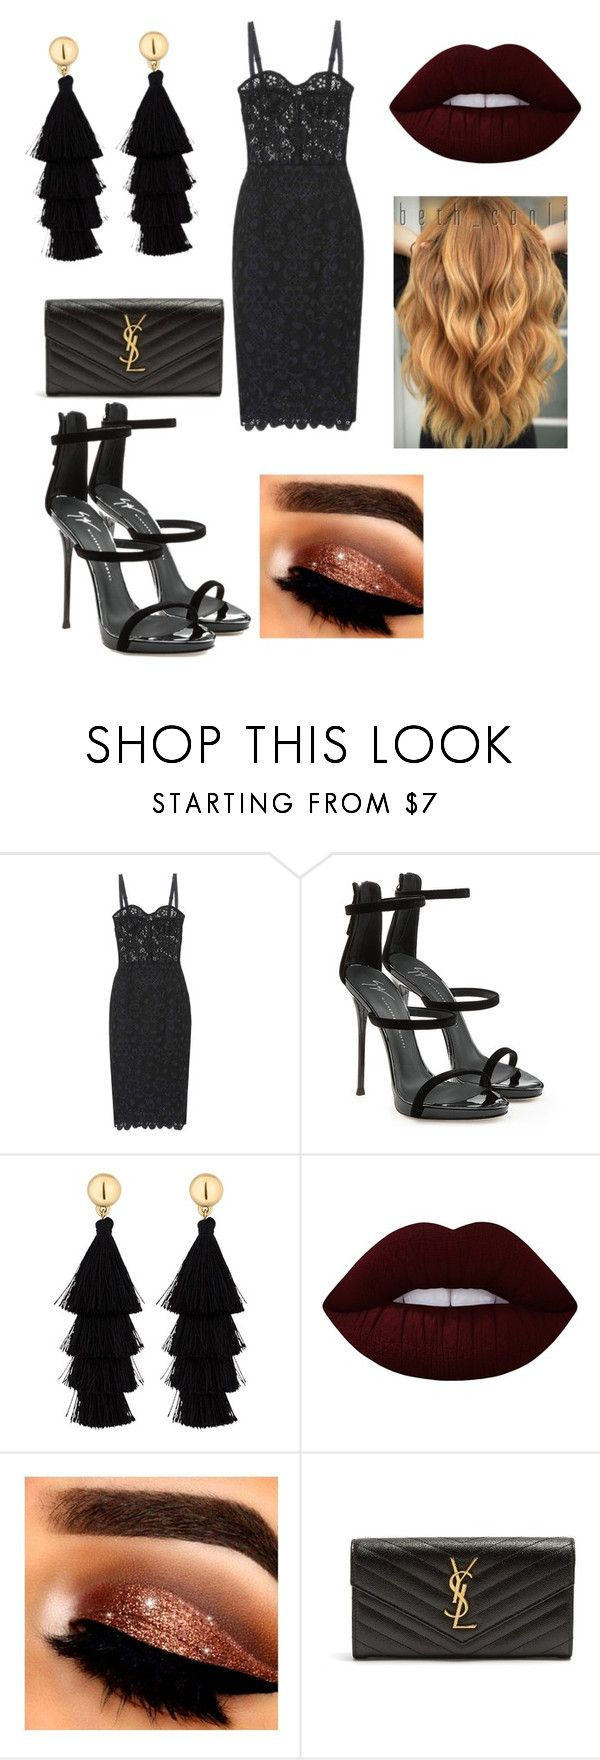 """My First Polyvore Outfit"" by gntm728 ❤ liked on Polyvore featuring Dolce&Gabbana, Giuseppe Zanotti, Red Herring, Lime Crime and Yves Saint Laurent"